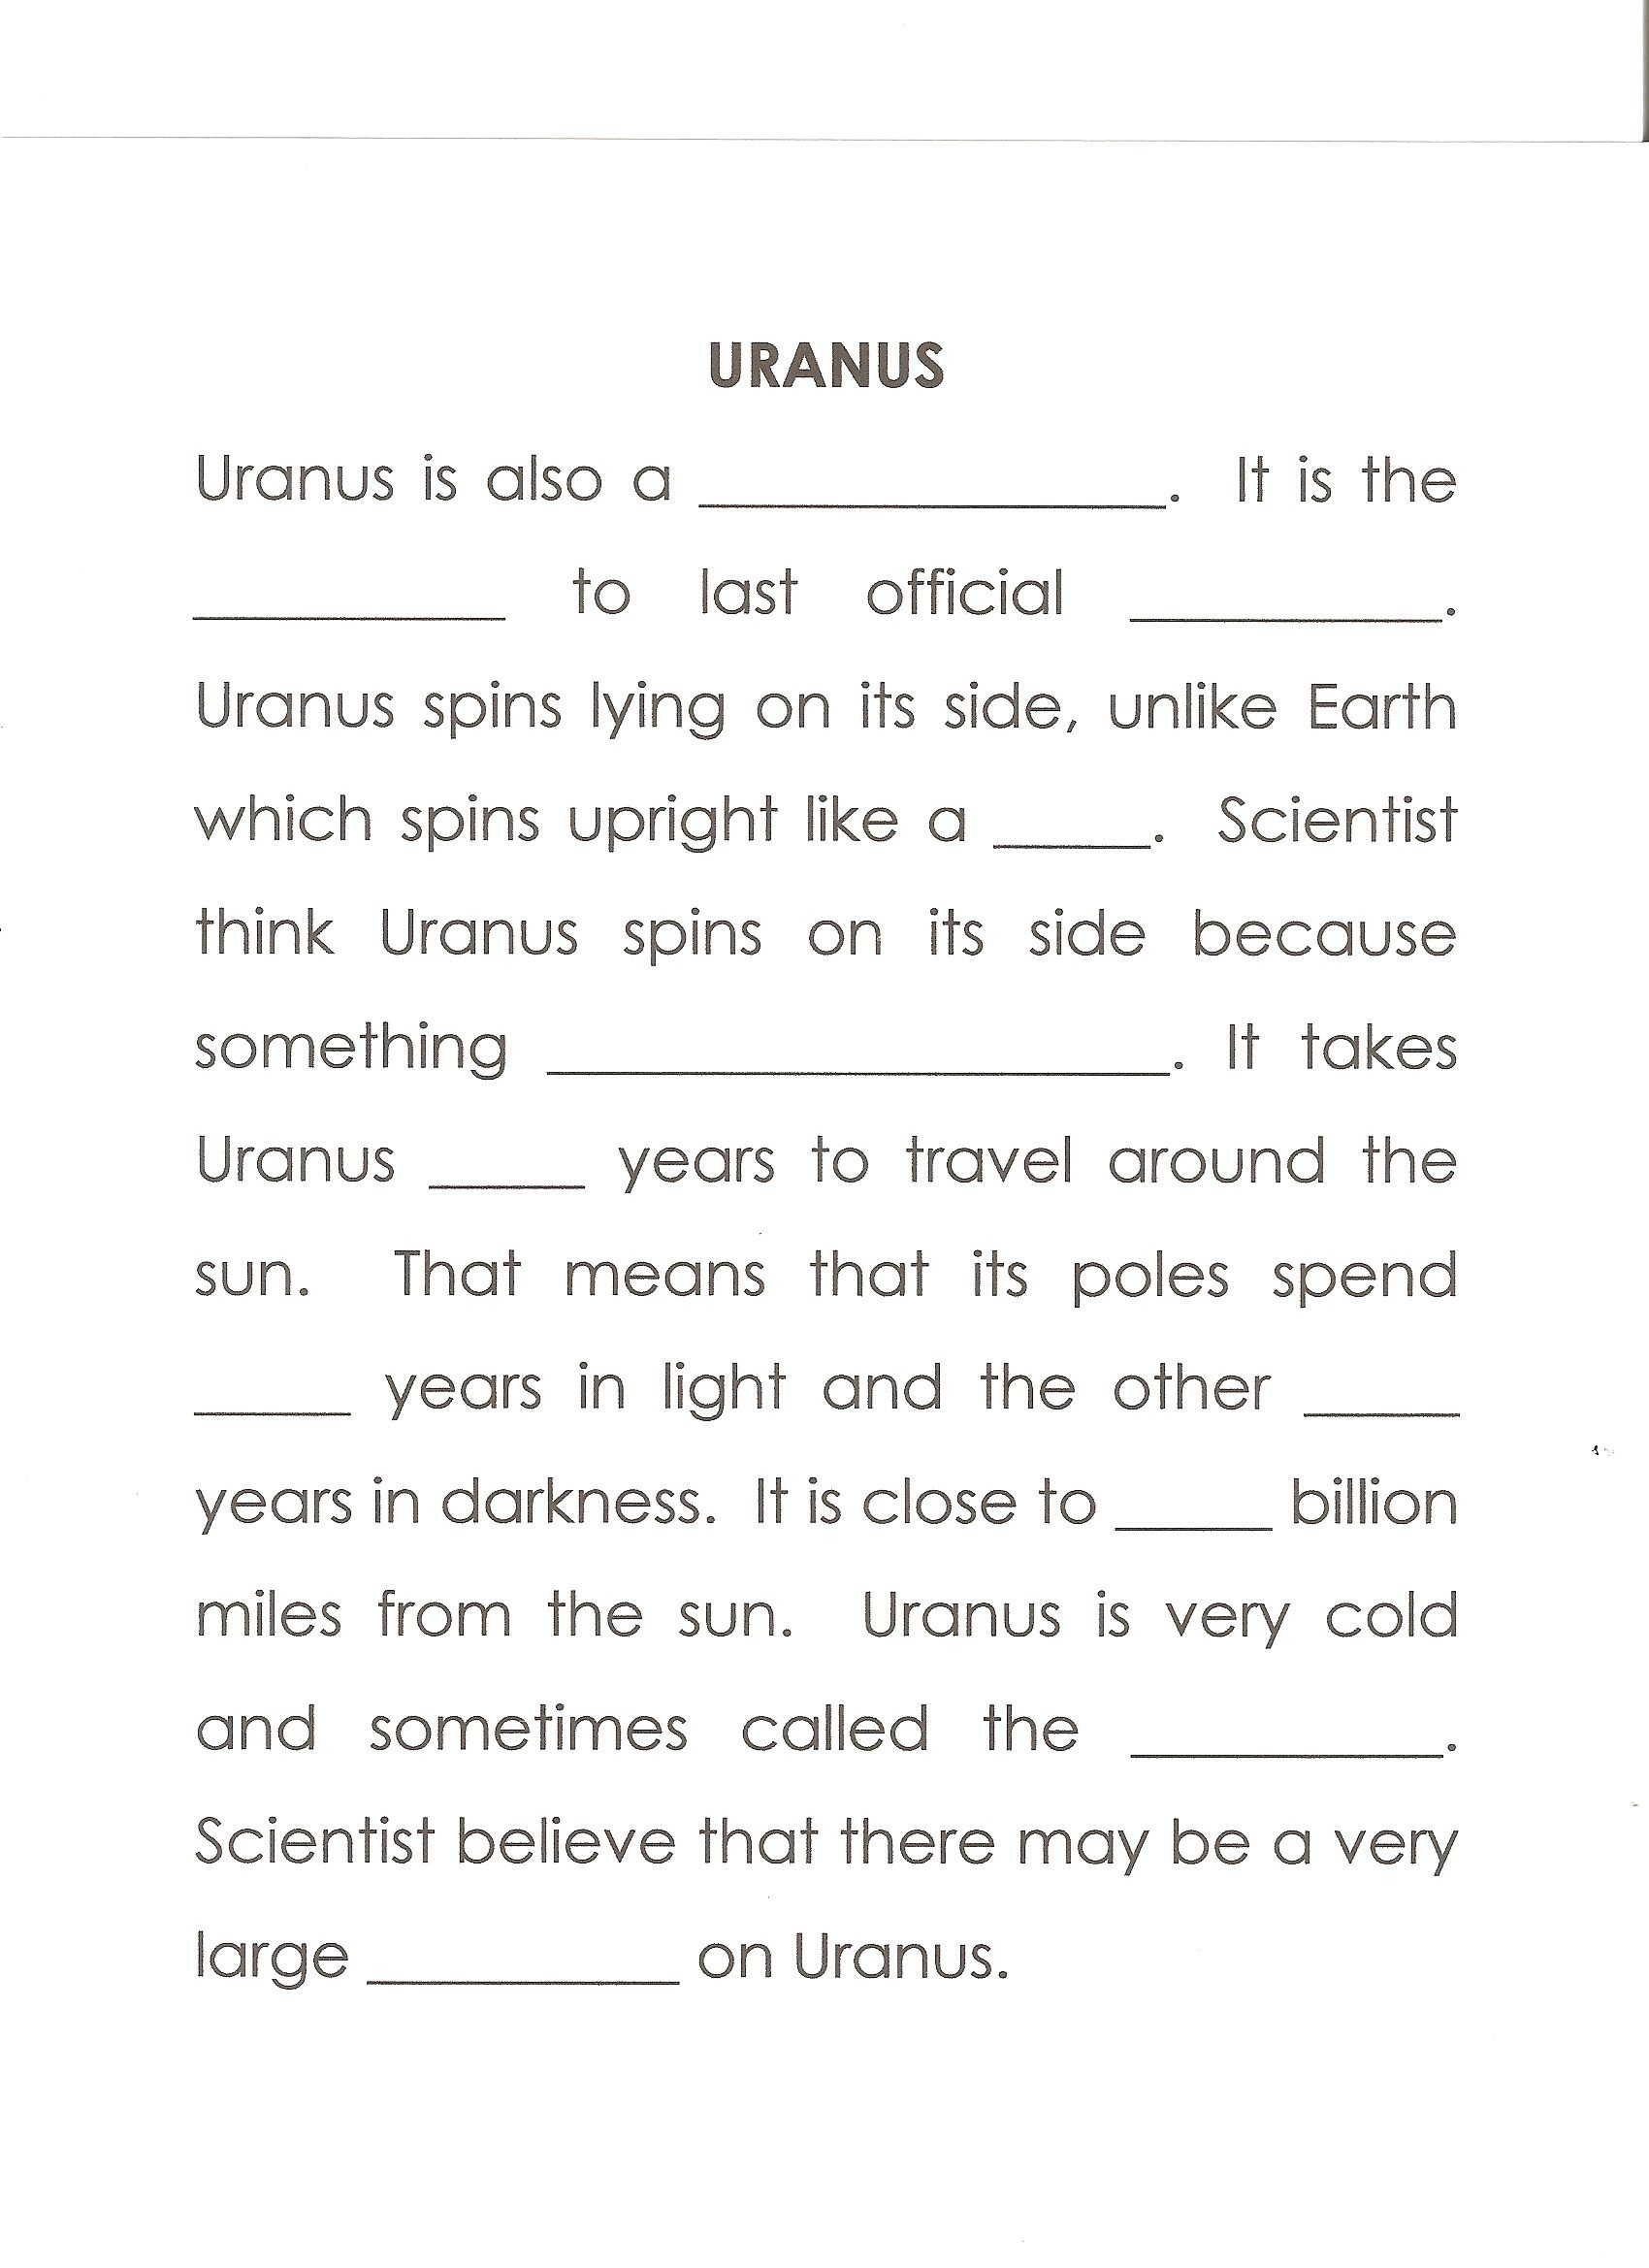 Urworksheet Answers Gas Giant Second Planet Top Crashed Into It 84 42 42 2 Ice